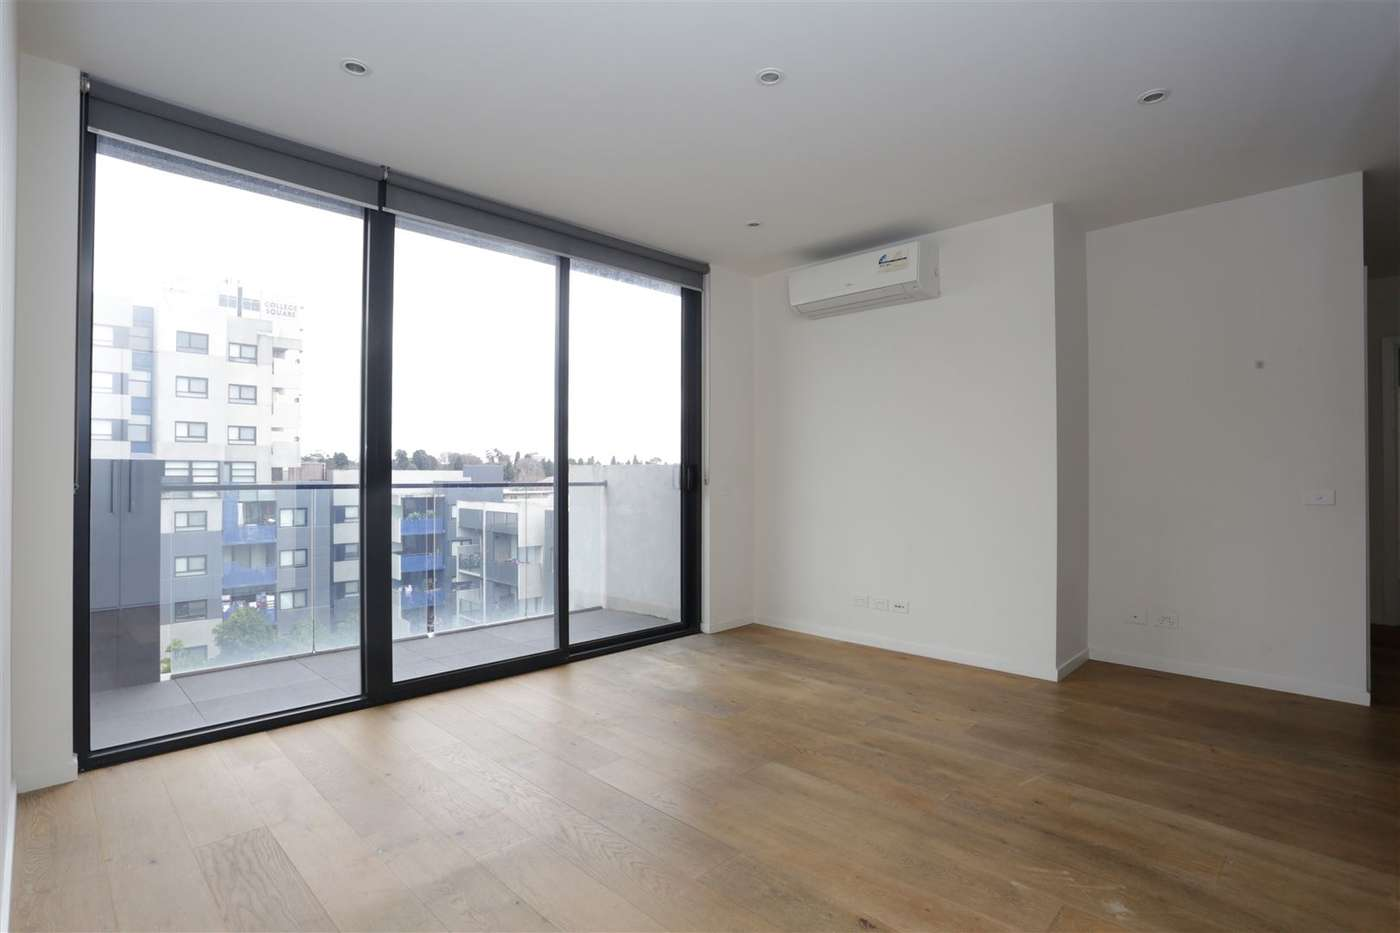 Main view of Homely apartment listing, 501/525 Rathdowne Street, Carlton, VIC 3053